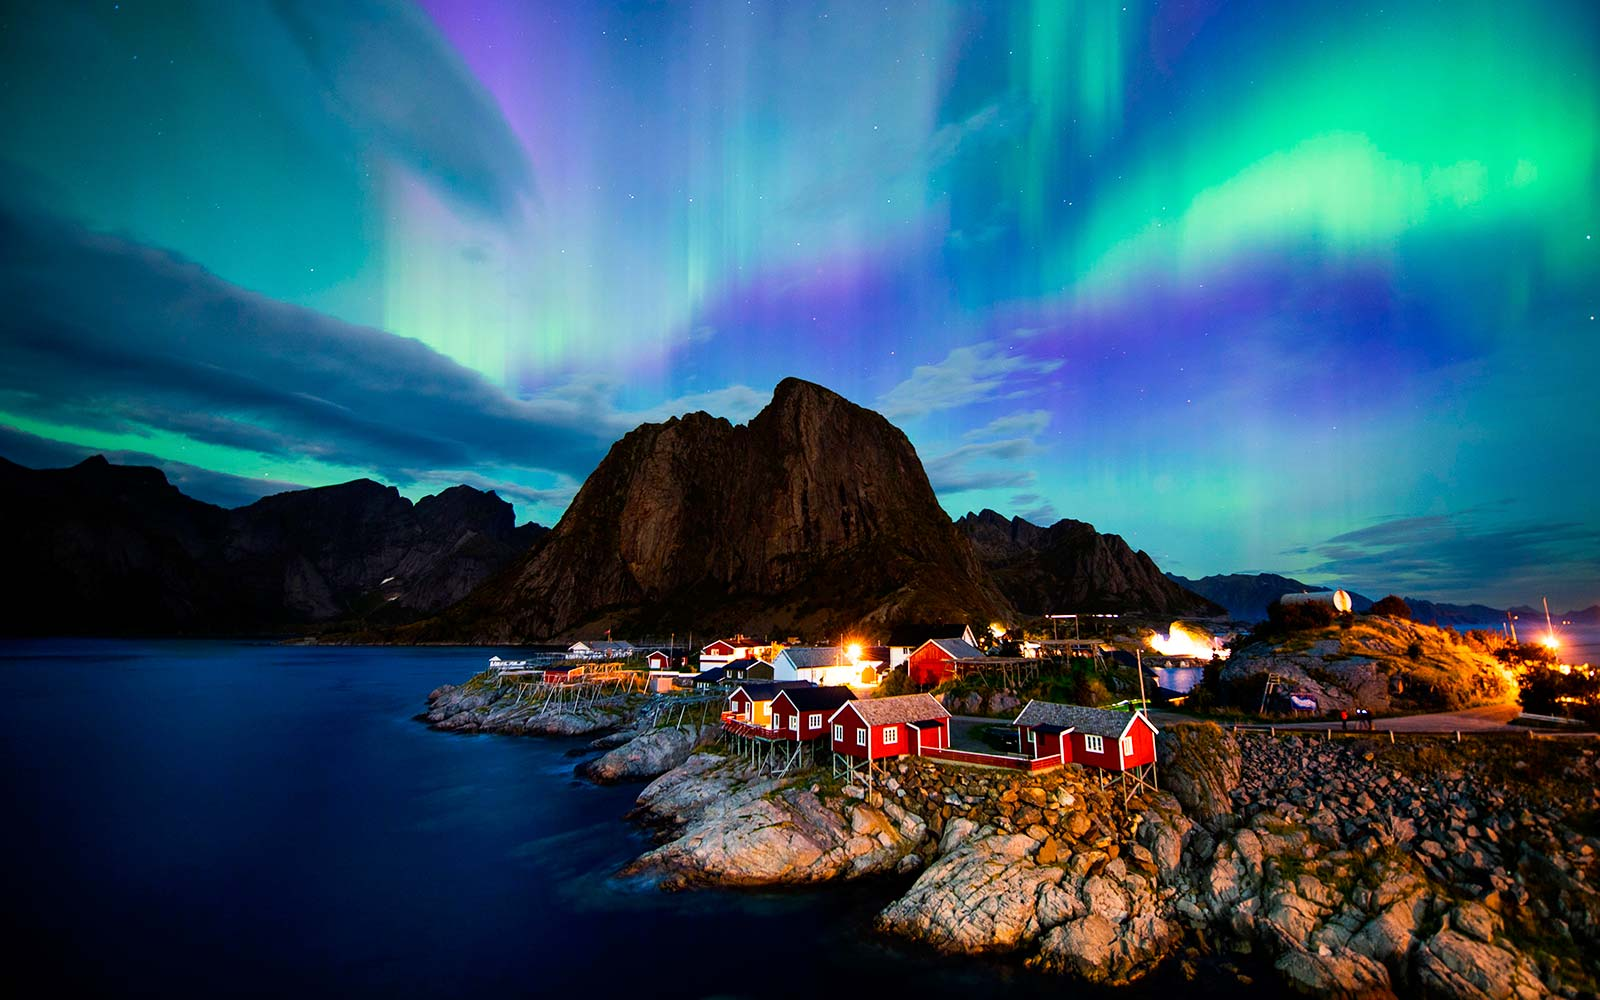 https://i.ibb.co/vqp7H8K/Northern-lights-aurora-borealis-illuminate-the-sky-over-Reinfjorden-in-Reine-on-Lofoten-Islands-Arct.jpg